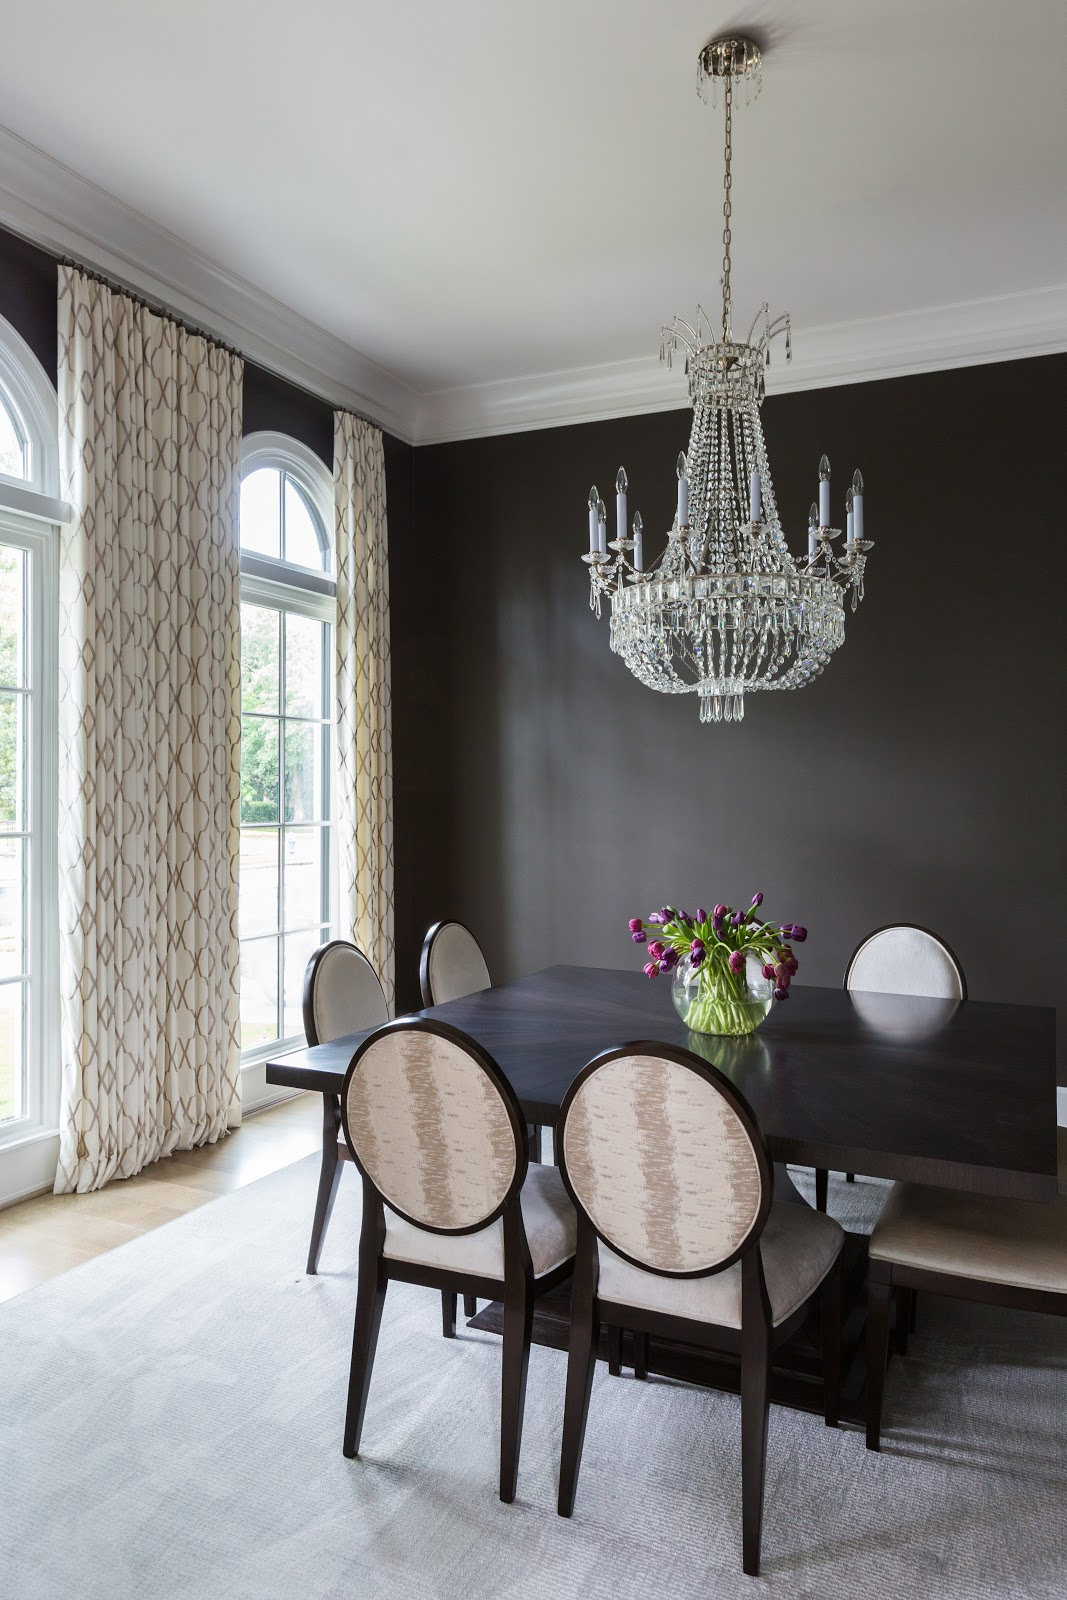 Traditional antique crystal chandelier in dark dining room - Laura U Interior Design